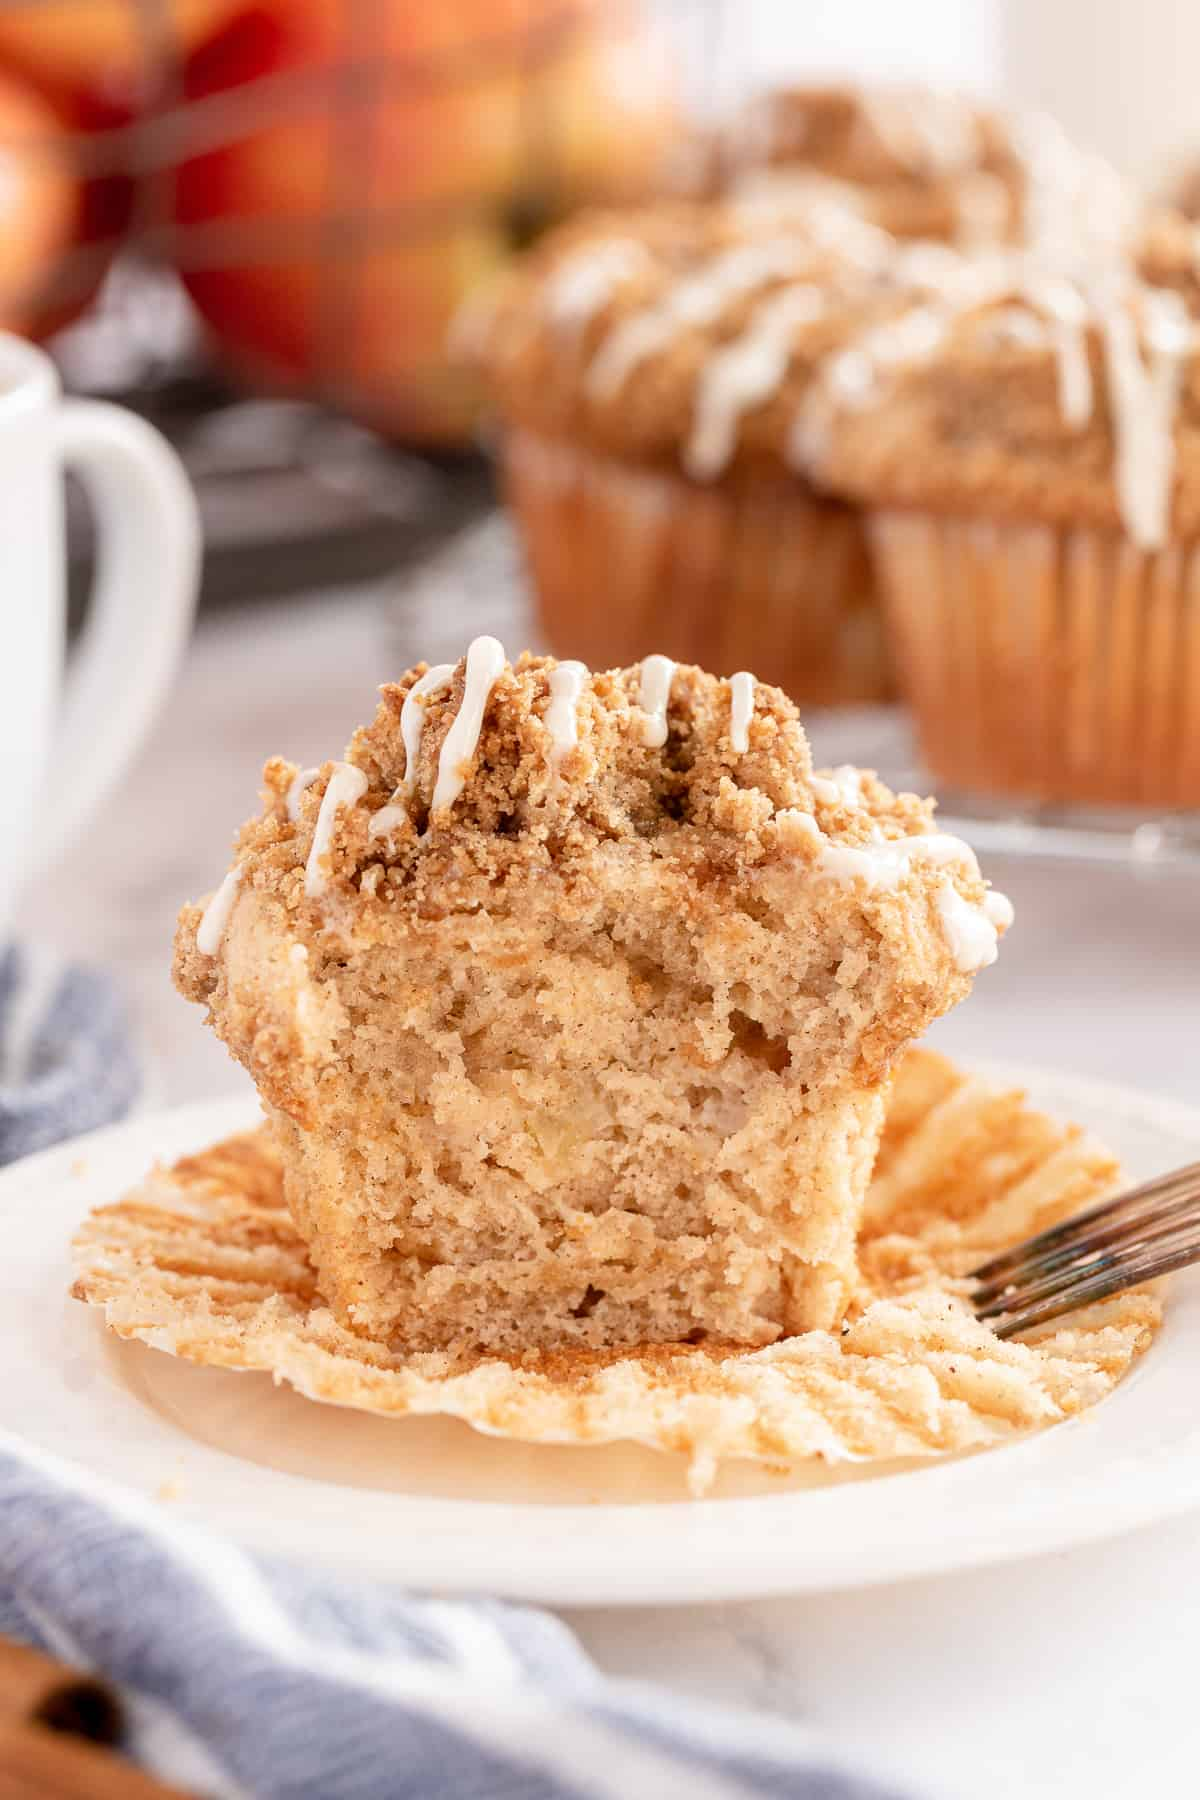 An apple muffin that has been but open to reveal the inside.